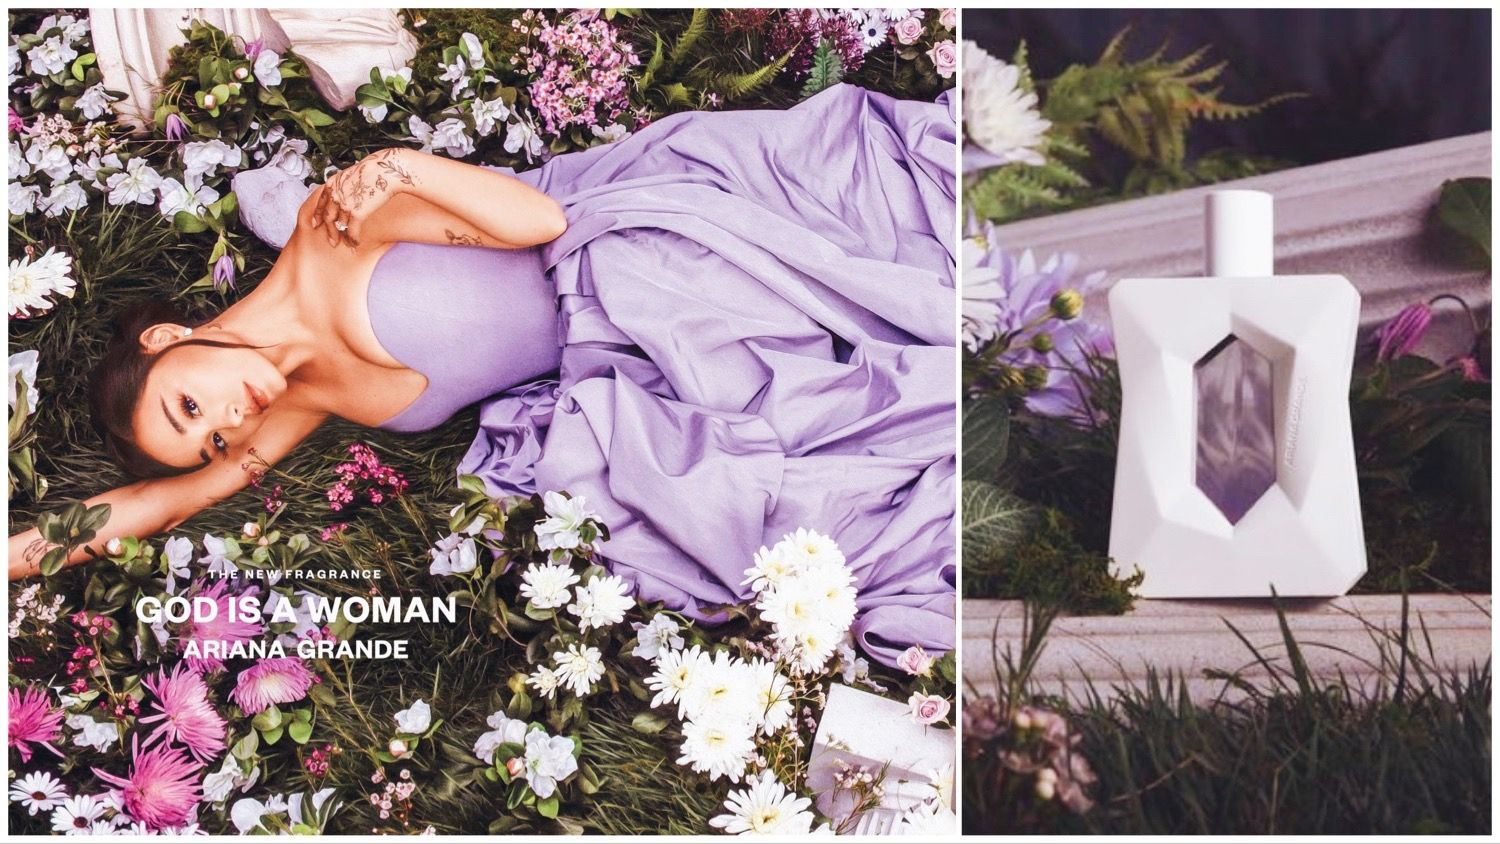 Ariana Grande lying down in a field of flowers, split with her new perfume bottle